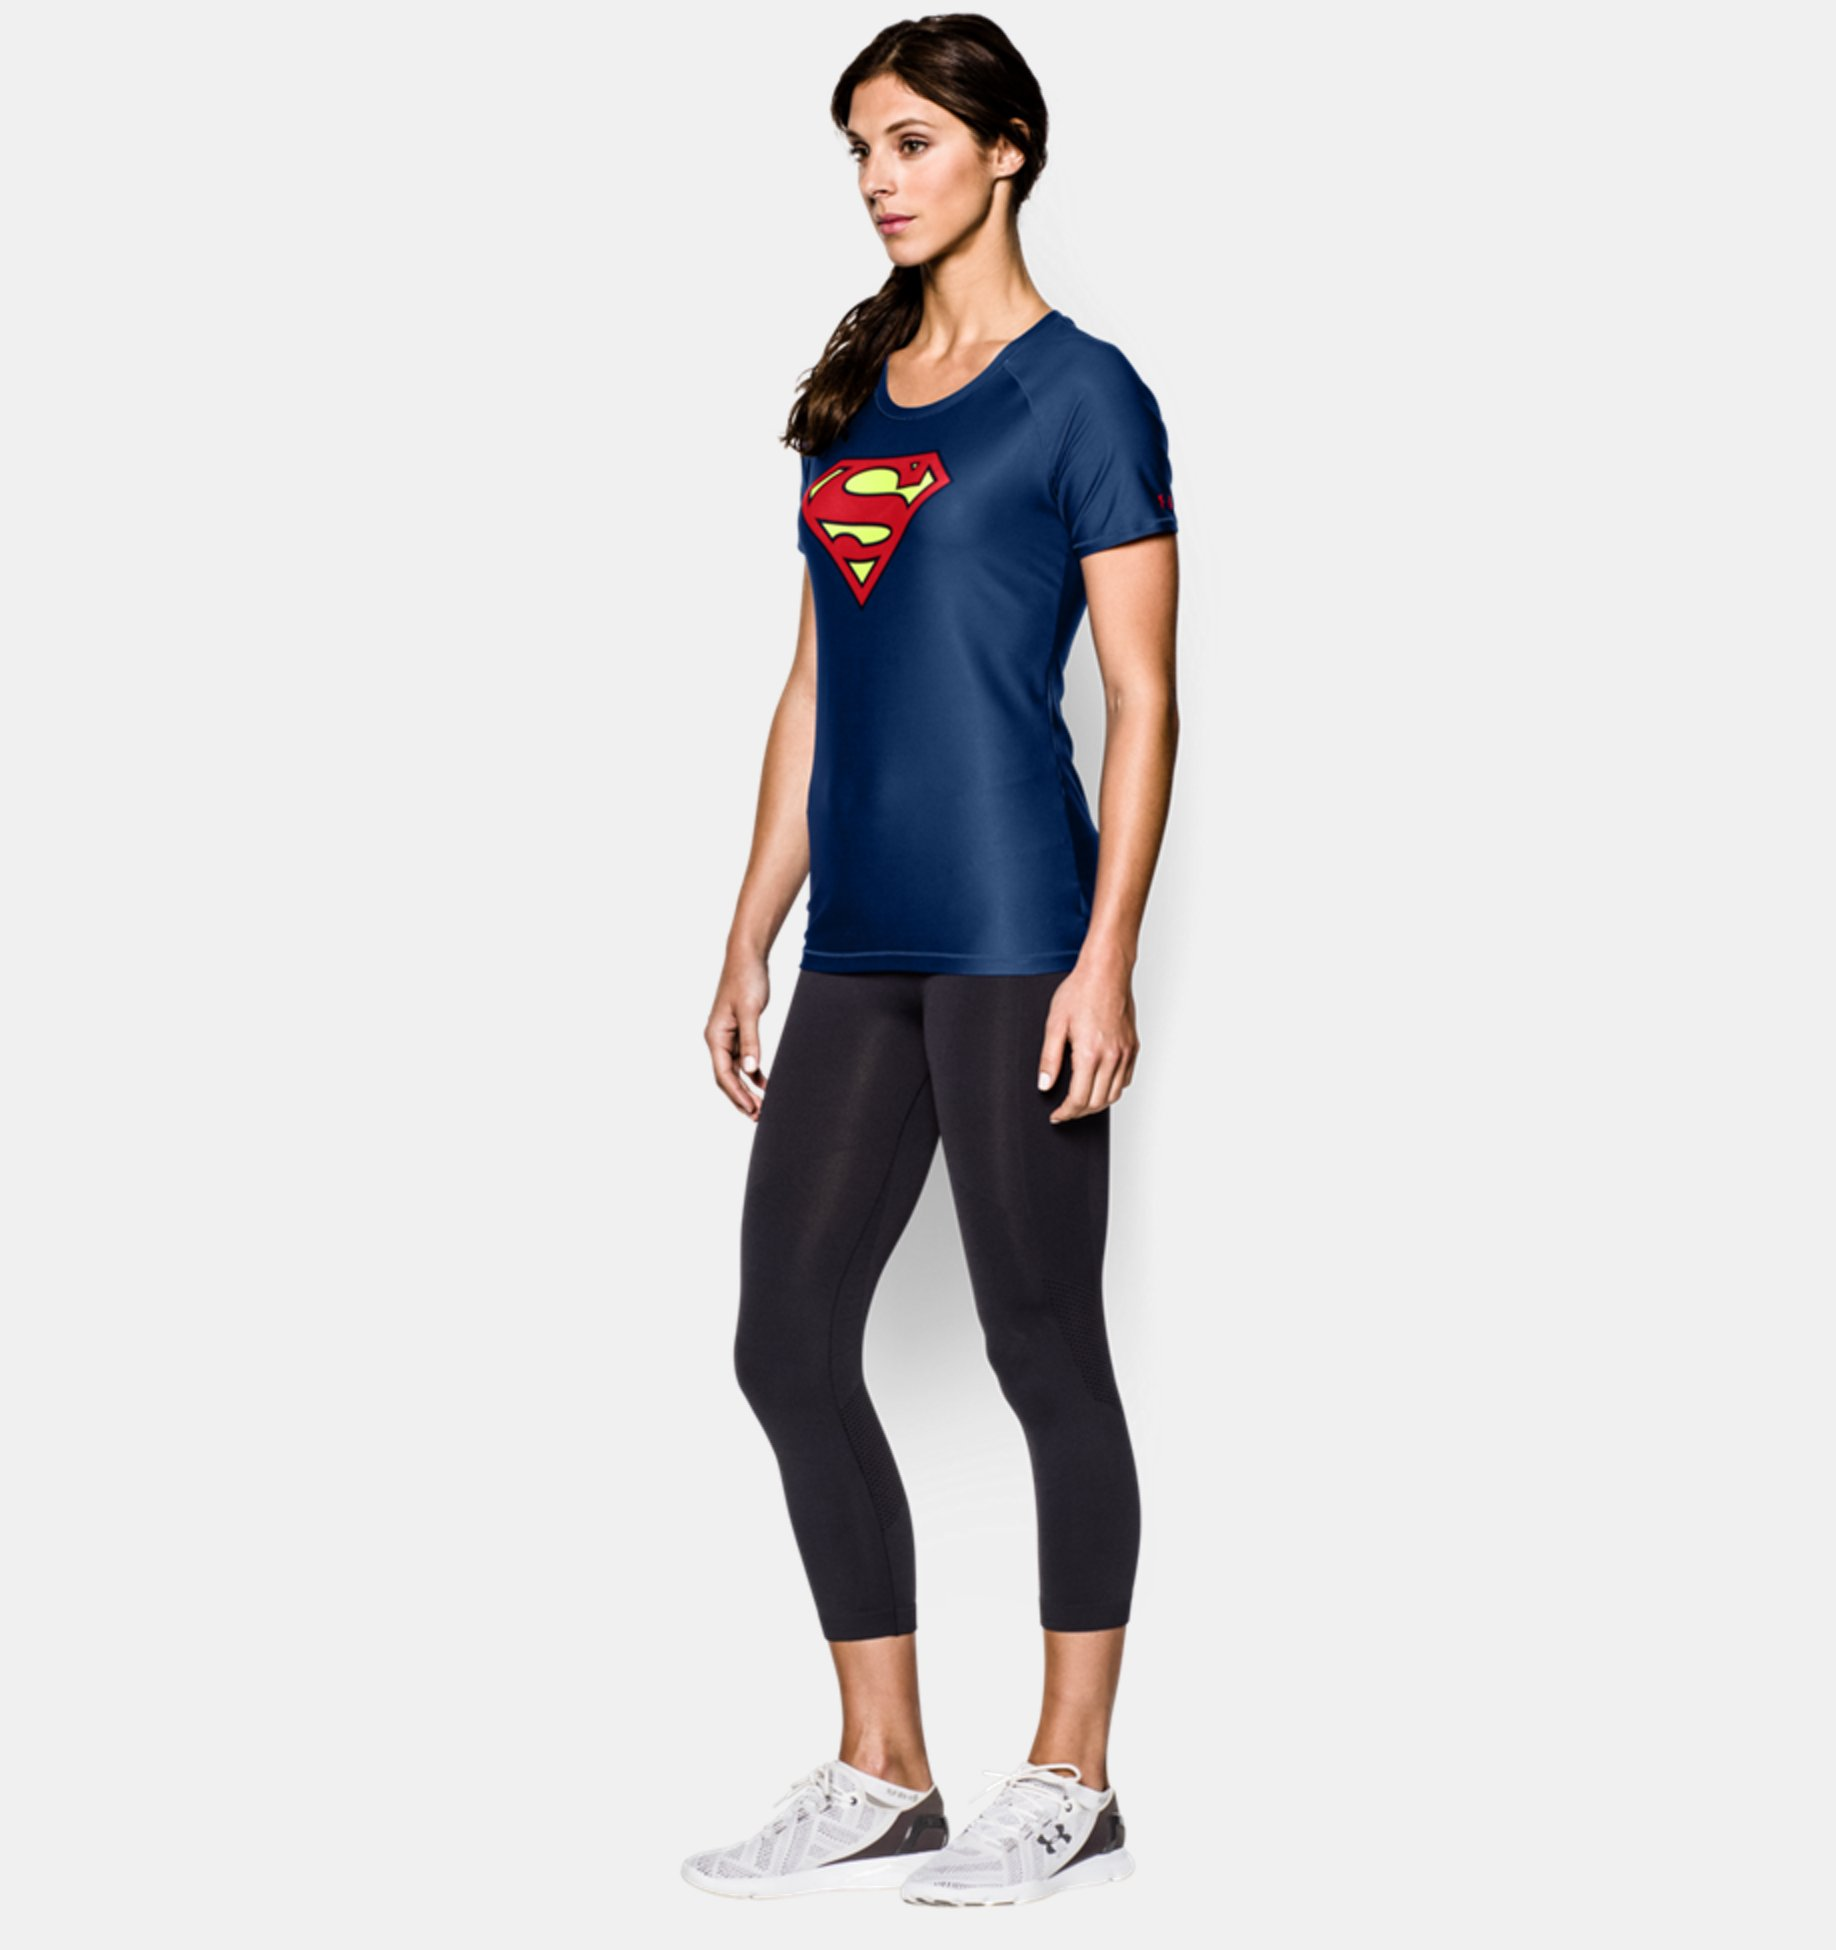 755504c3 ... Women's Under Armour® Alter Ego HeatGear® Sonic Supergirl T-Shirt